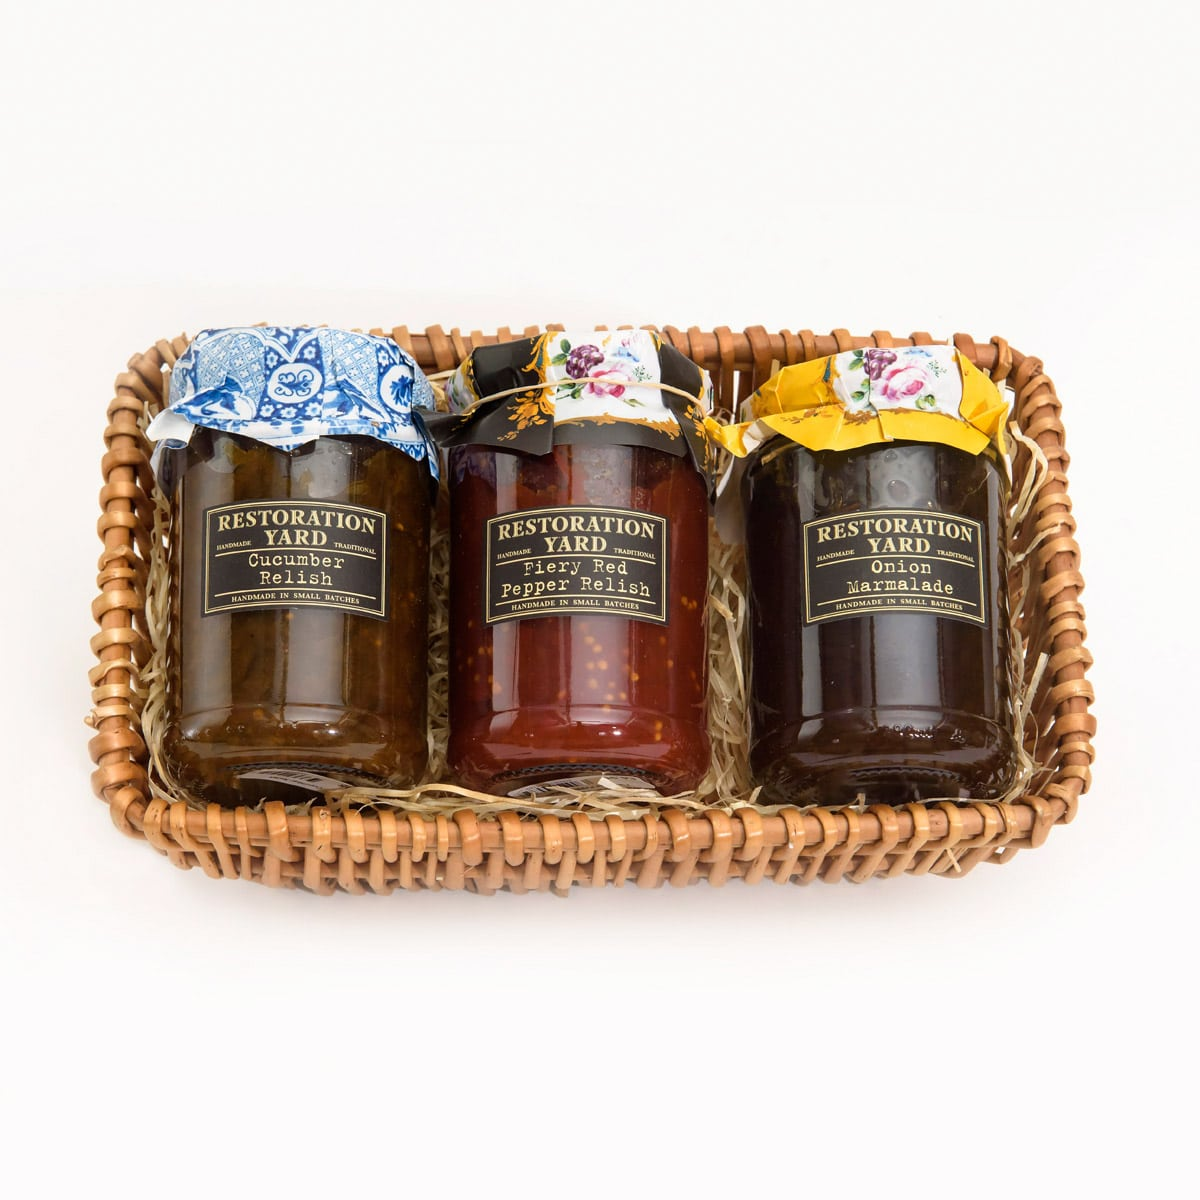 Restoration Yard Trio Onion Marmalade Cucumber Relish Fiery Red Pepper Relish | Restoration Yard